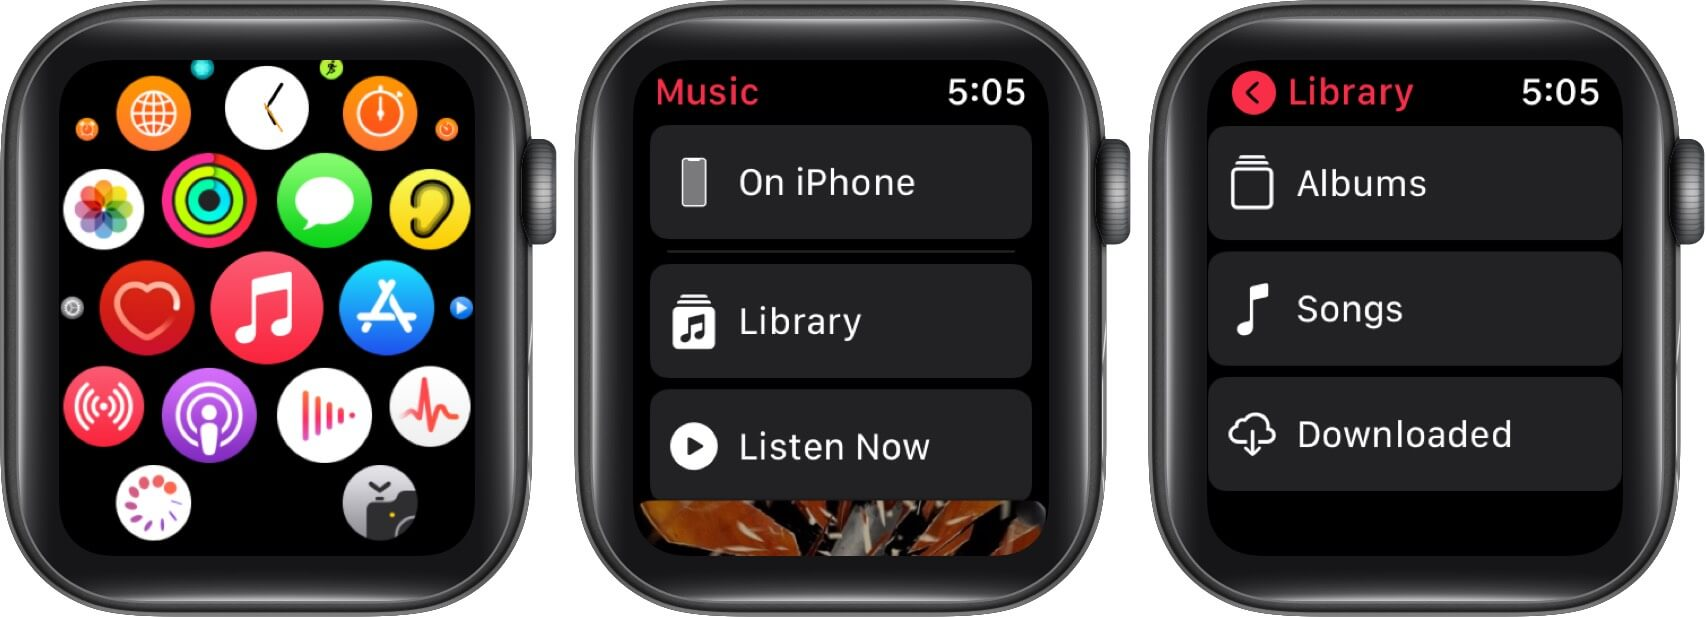 tap on music app in my watch tap then swipe left on item and tap on delete in watch app on iphone